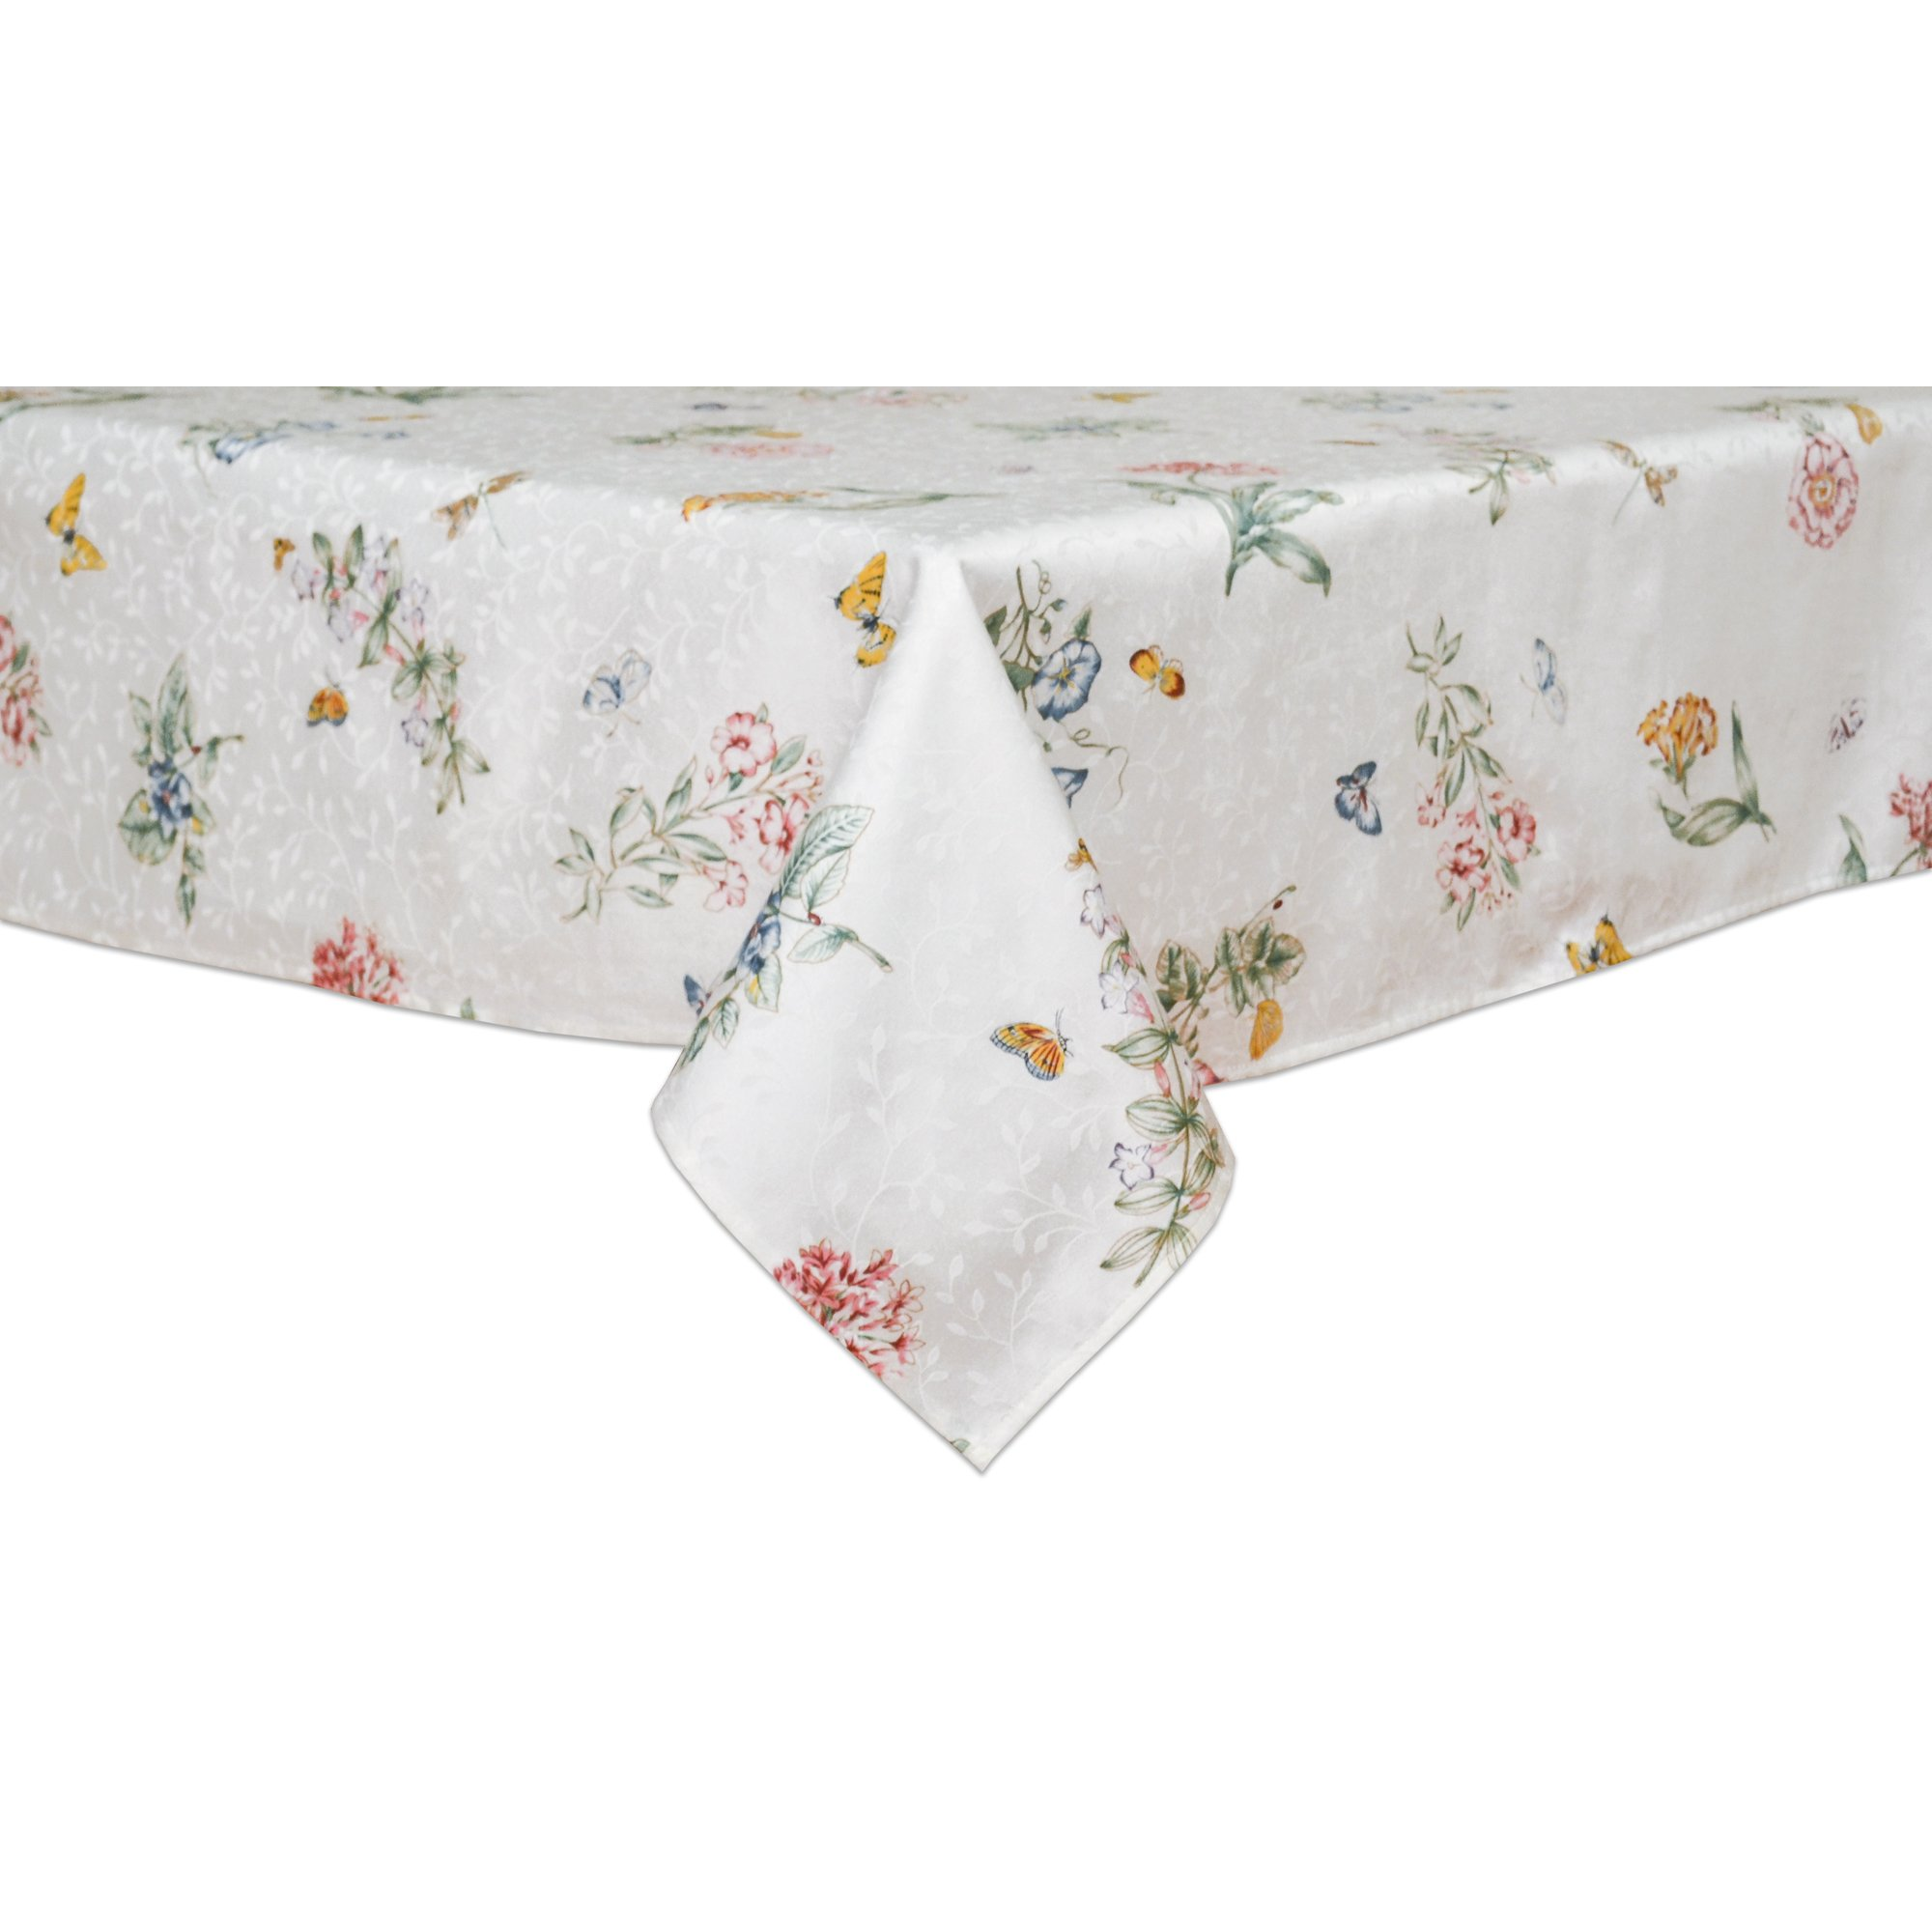 Lenox Butterfly Meadow 60-inch by 102-inch Oblong / Rectangle Tablecloth